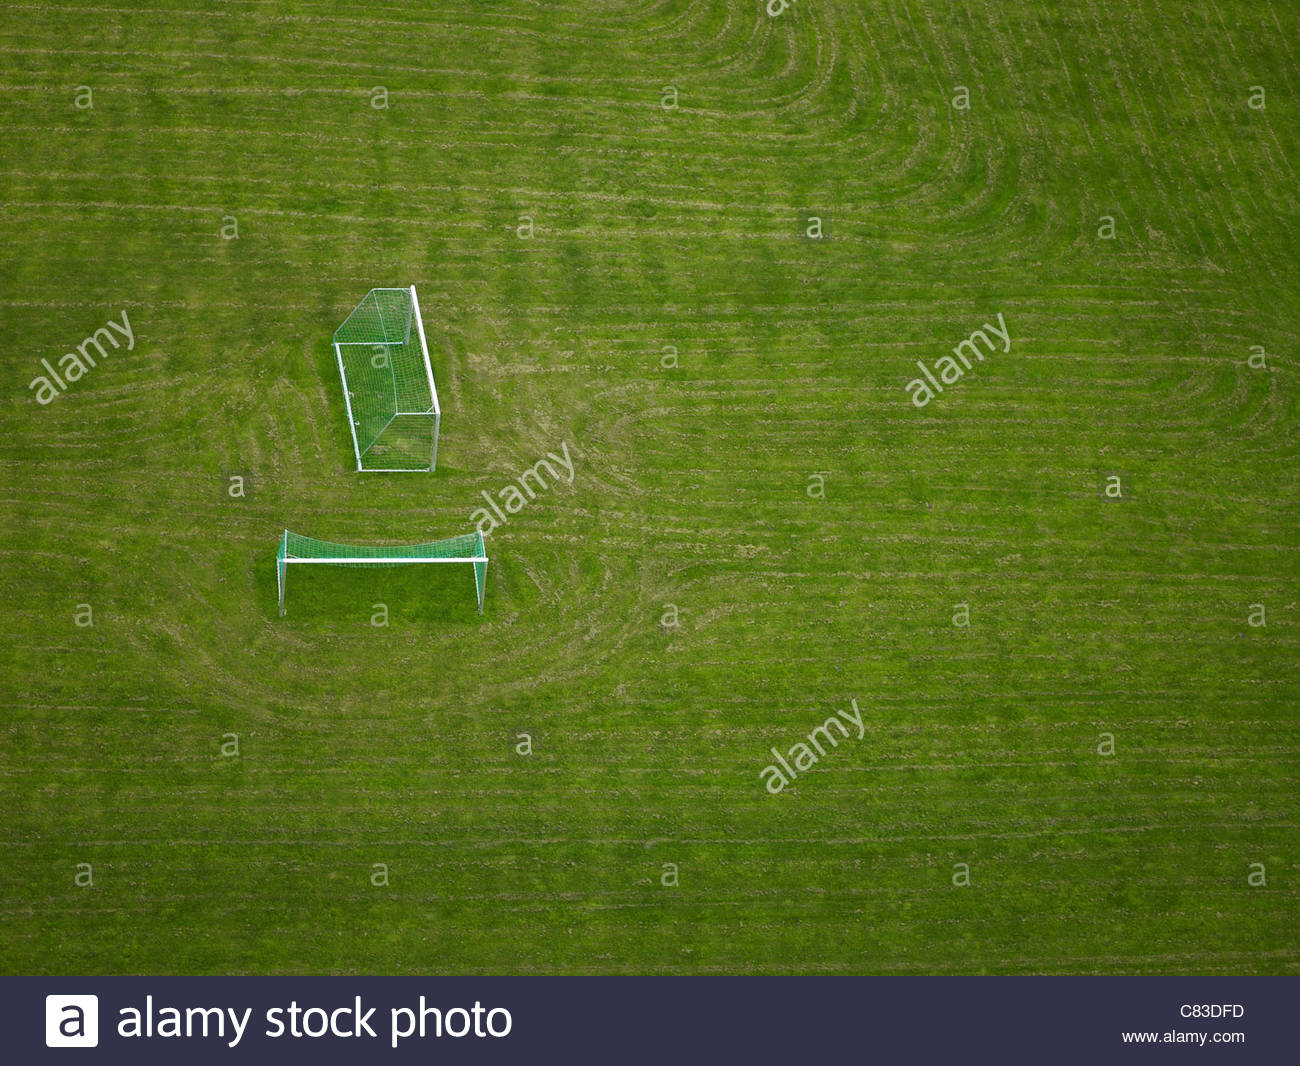 Aerial view of discarded soccer goals - Stock Image